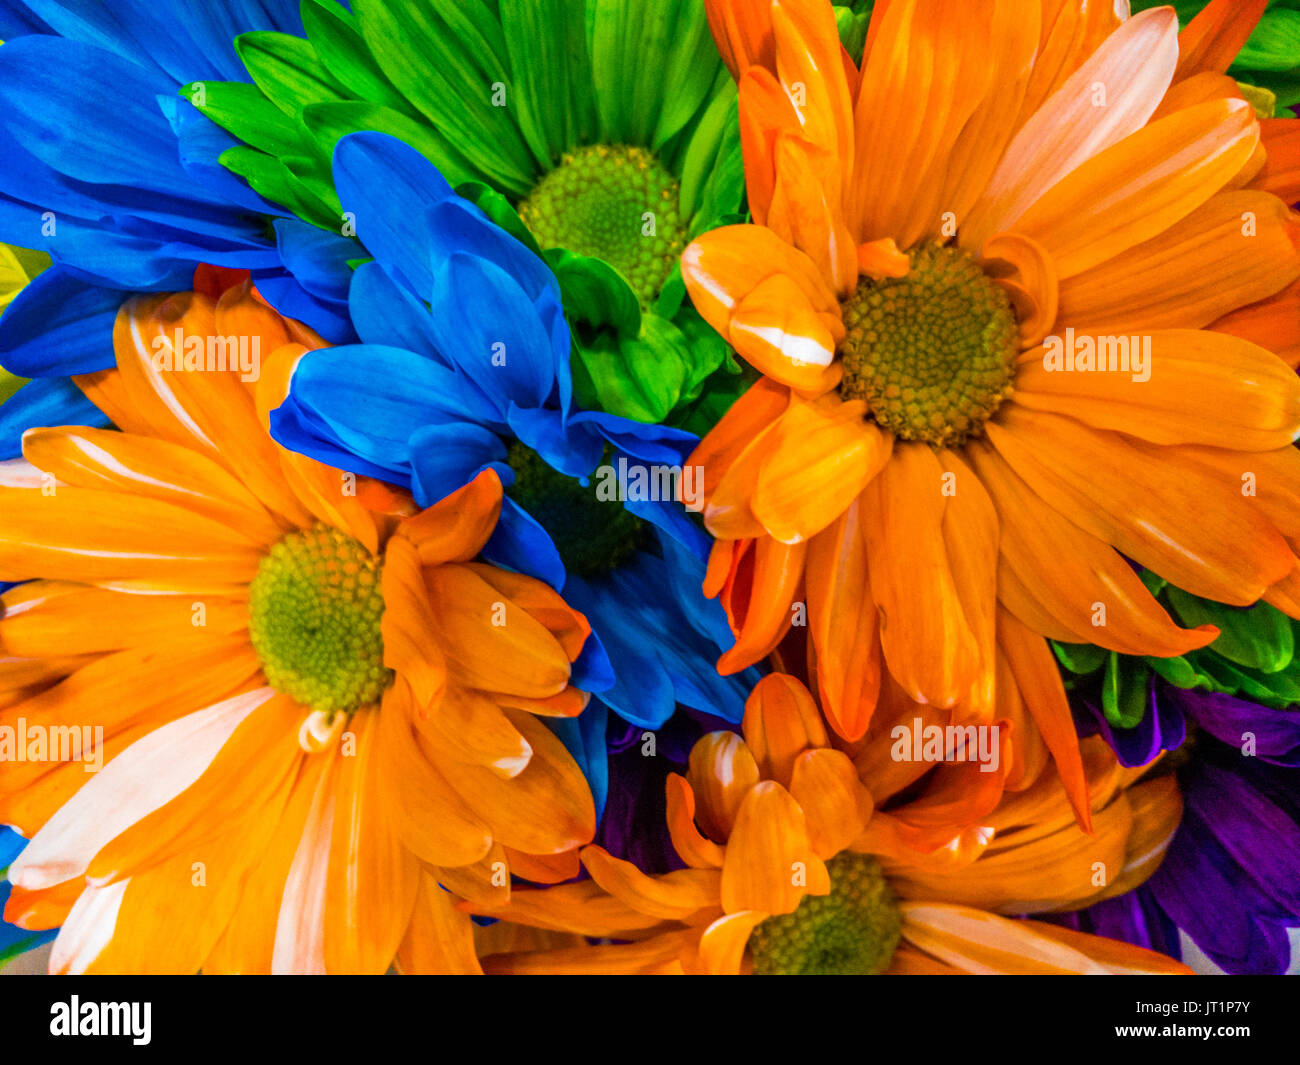 Multi colored flowers pictures